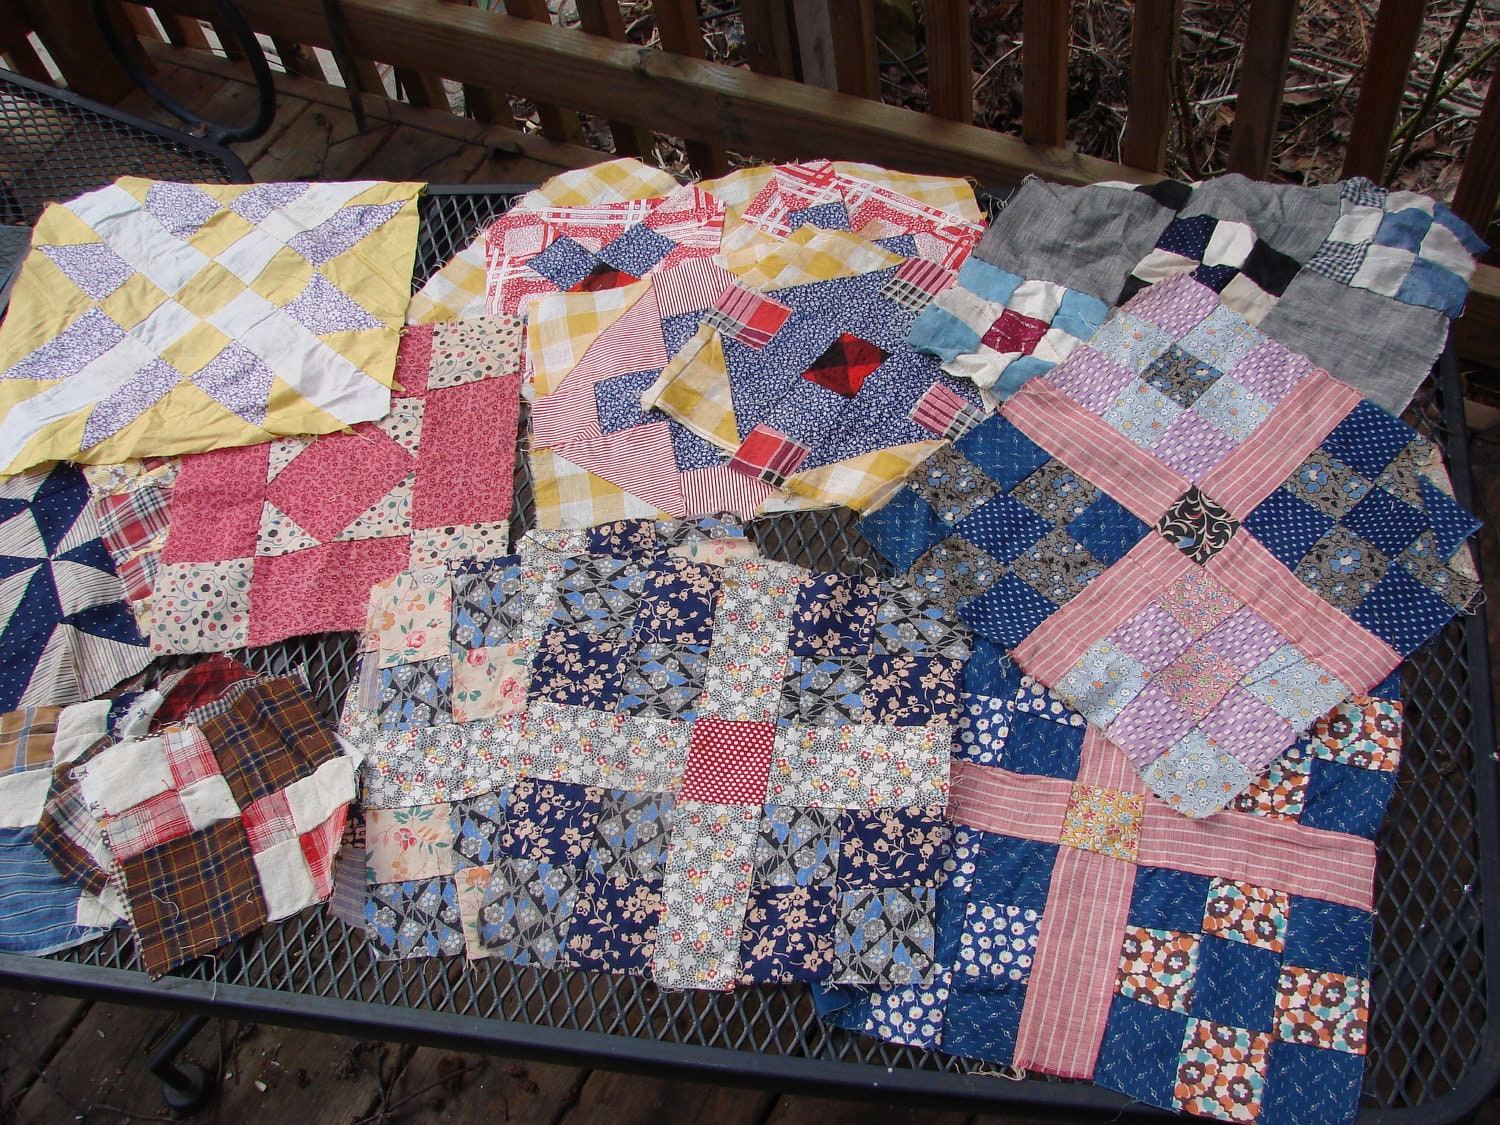 22 Vintage And Antique Quilt Blocks Of Assorted Patterns